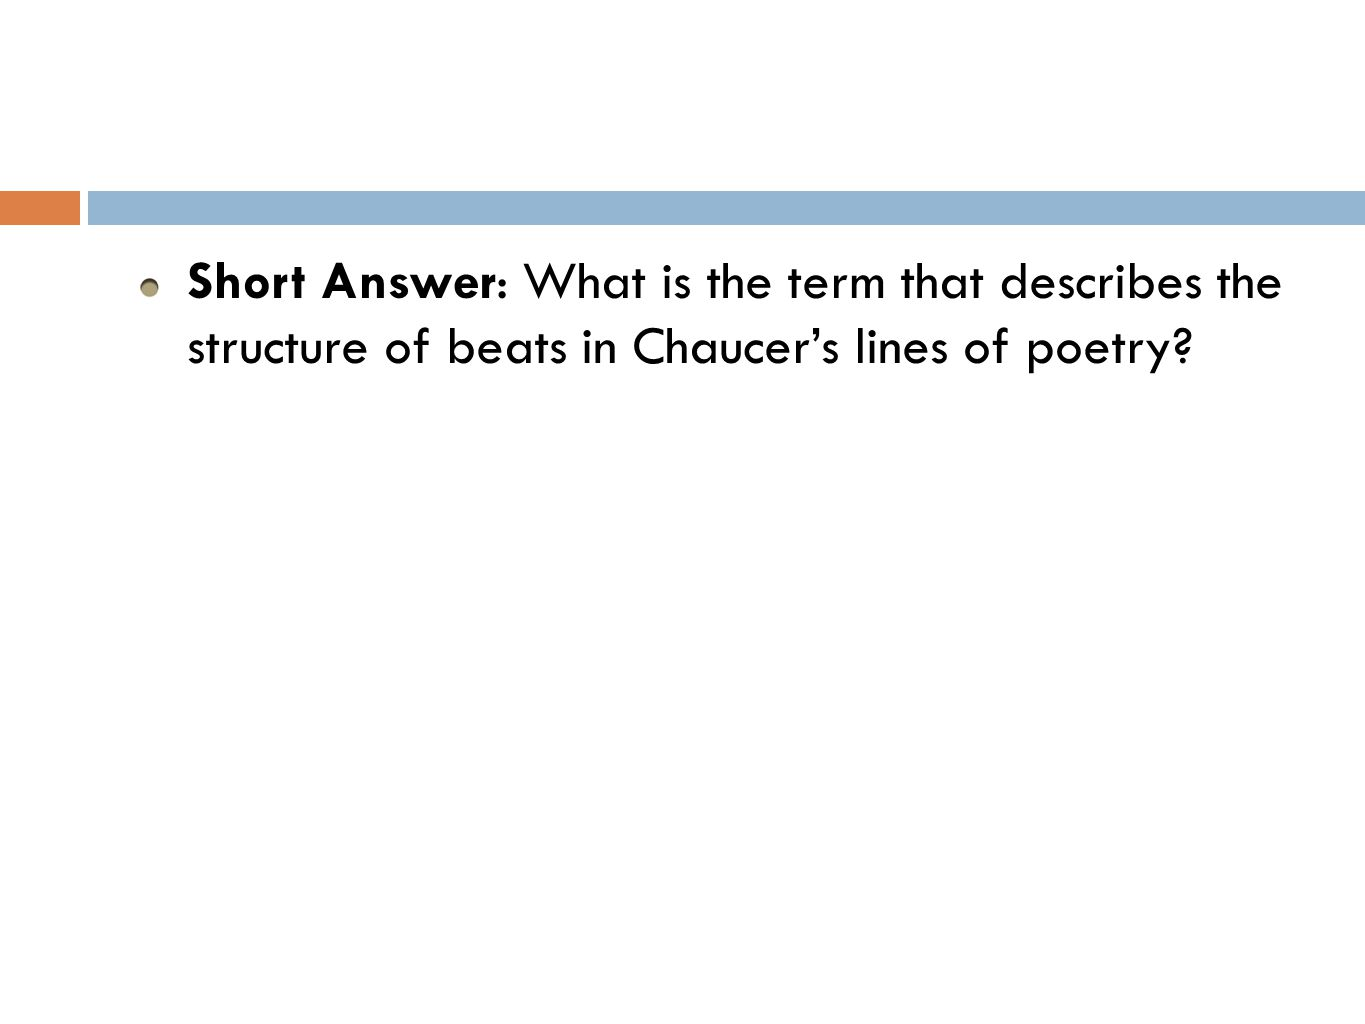 Short Answer: What is the term that describes the structure of beats in Chaucer's lines of poetry